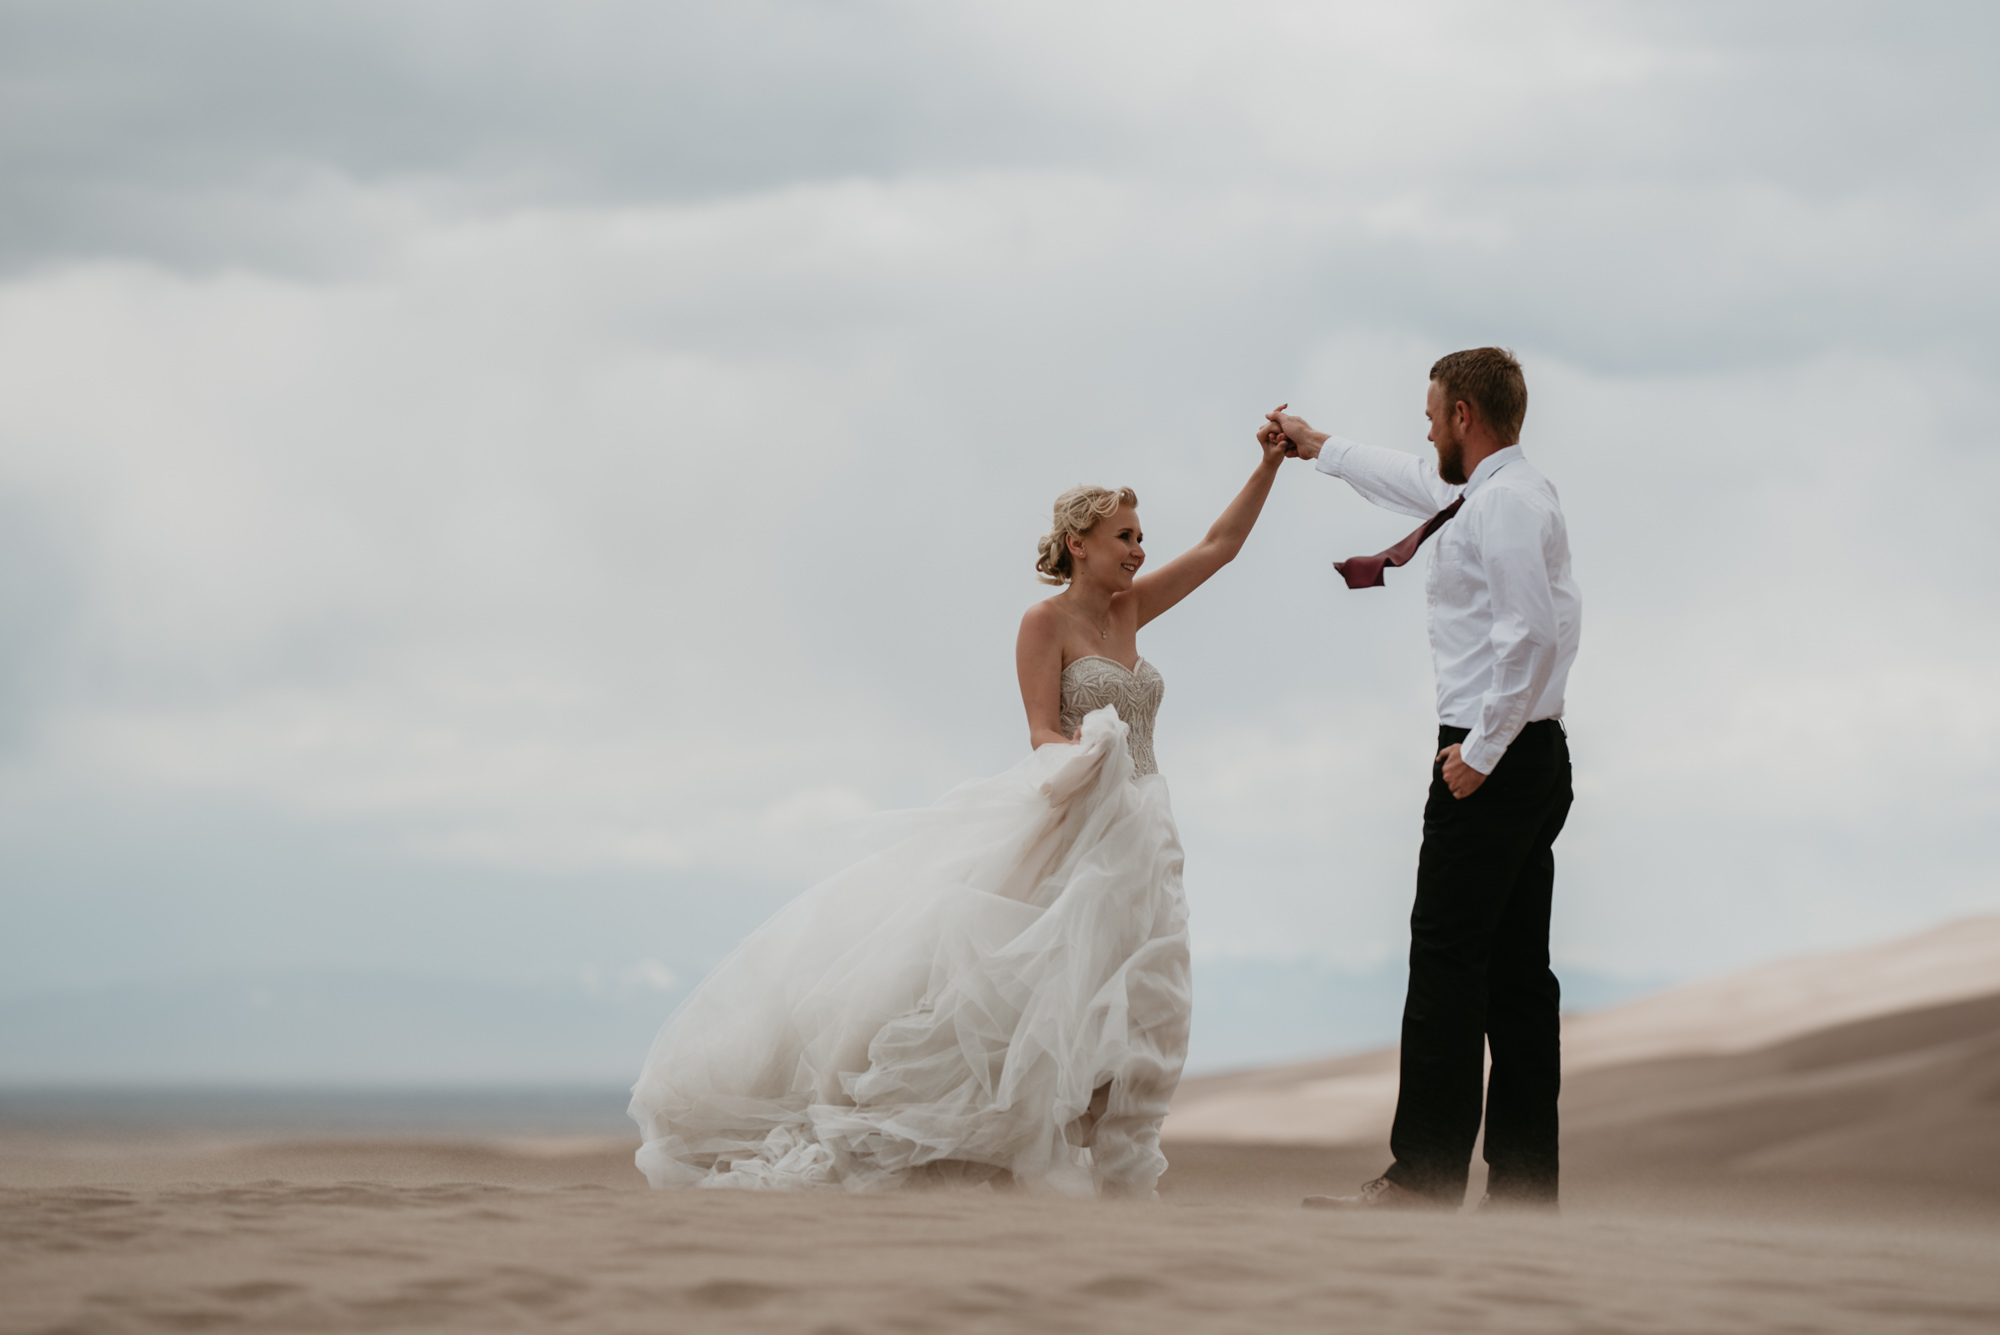 Kaitlyn and Doug dance in the sand under overcast skies.